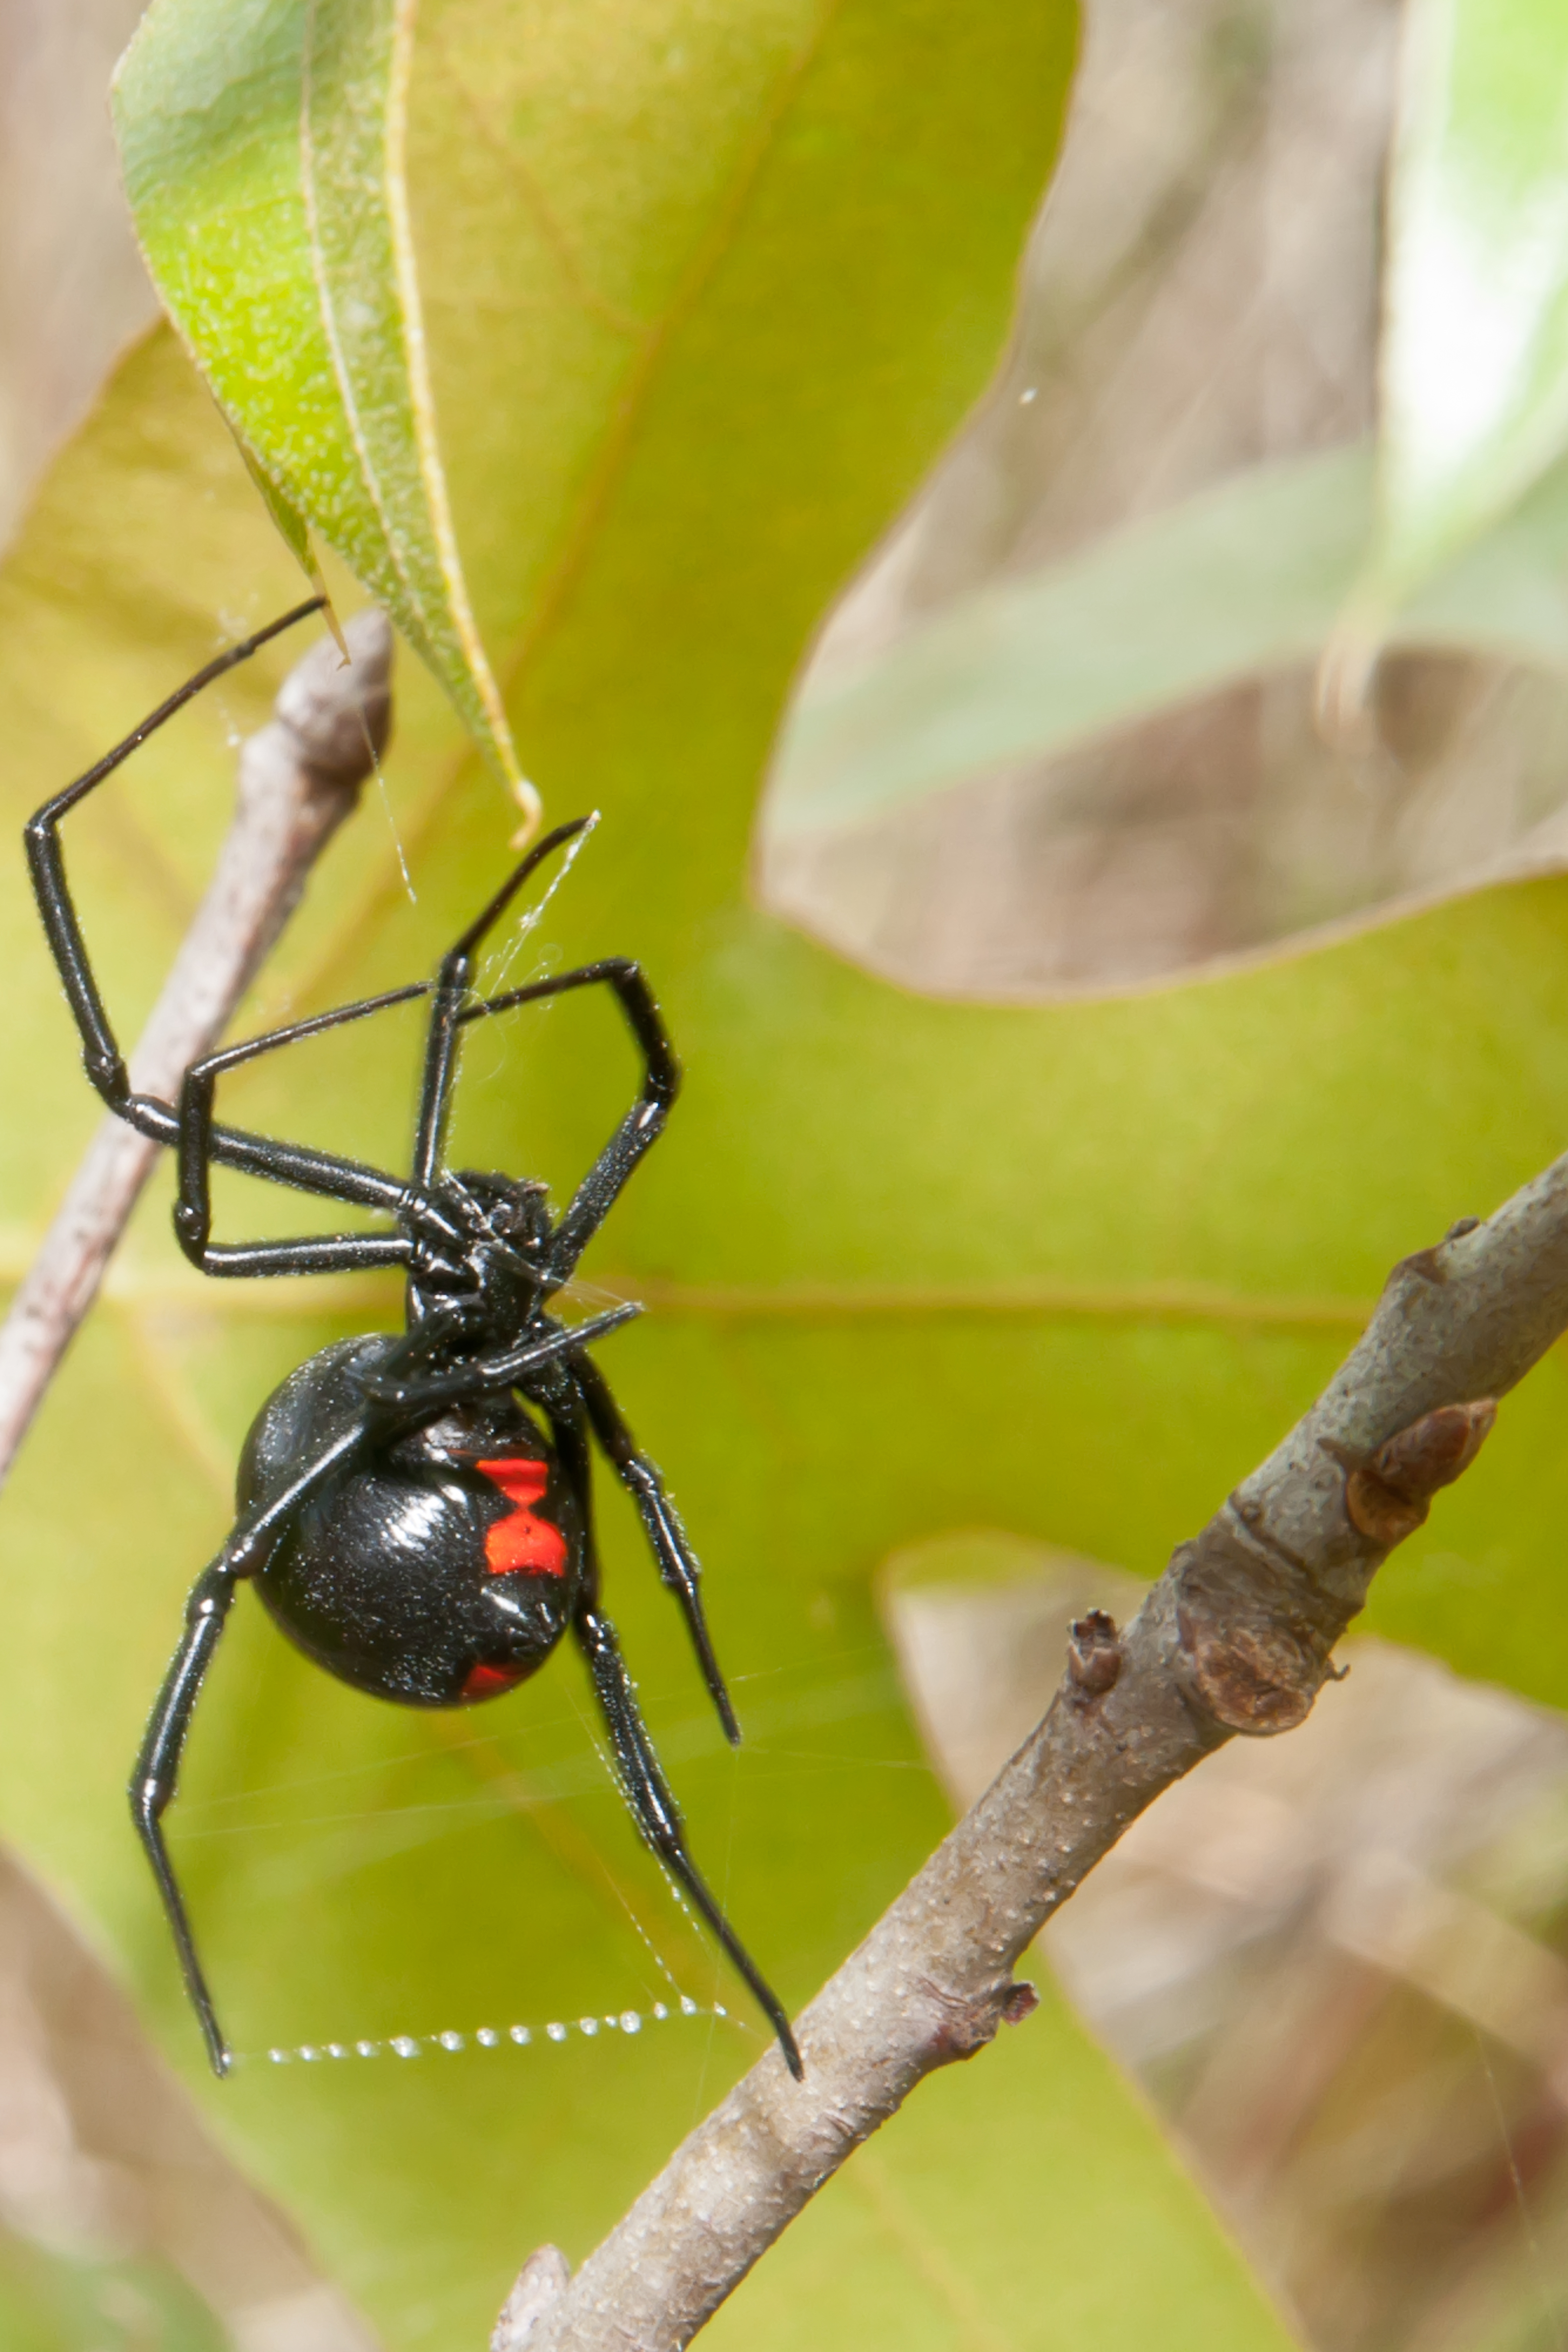 Poisonous Spiders Are Black